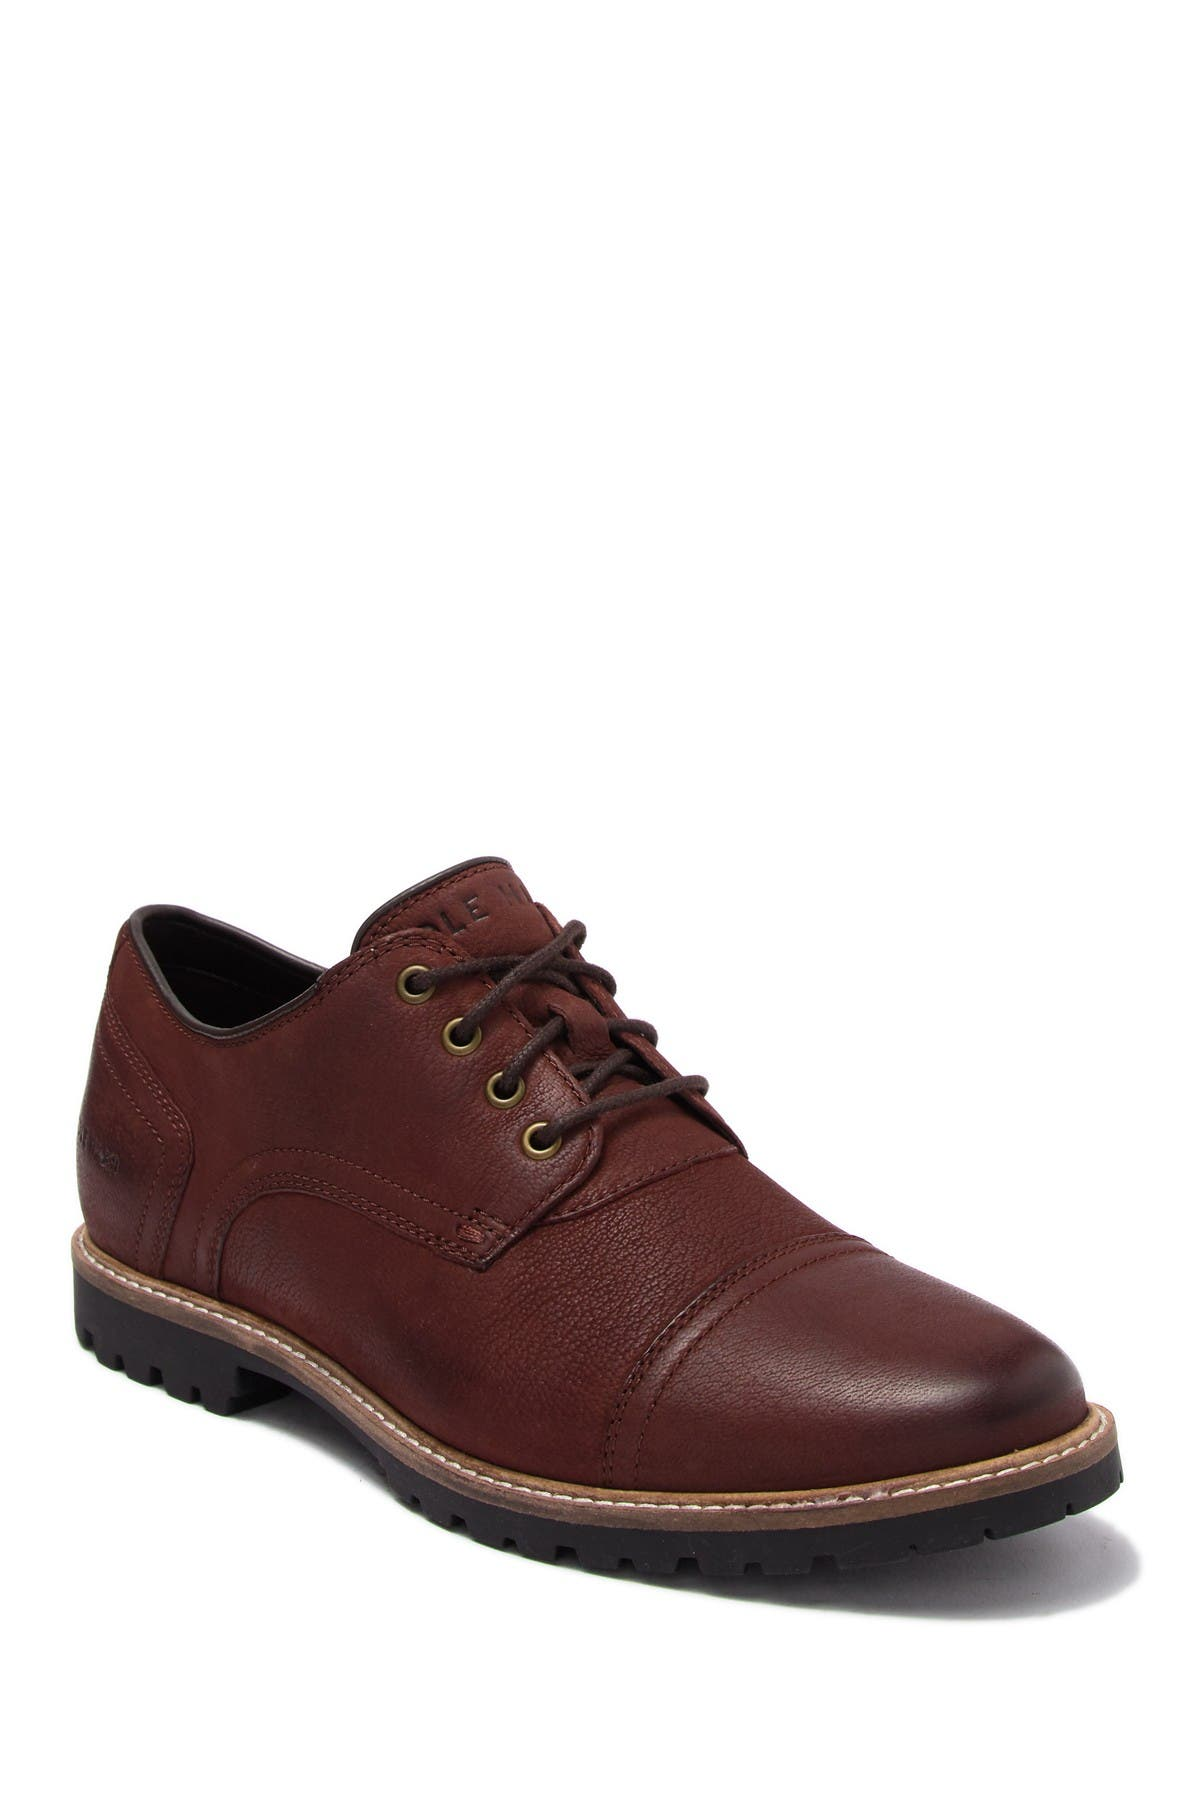 Image of Cole Haan Nathan Cap Toe Leather Derby